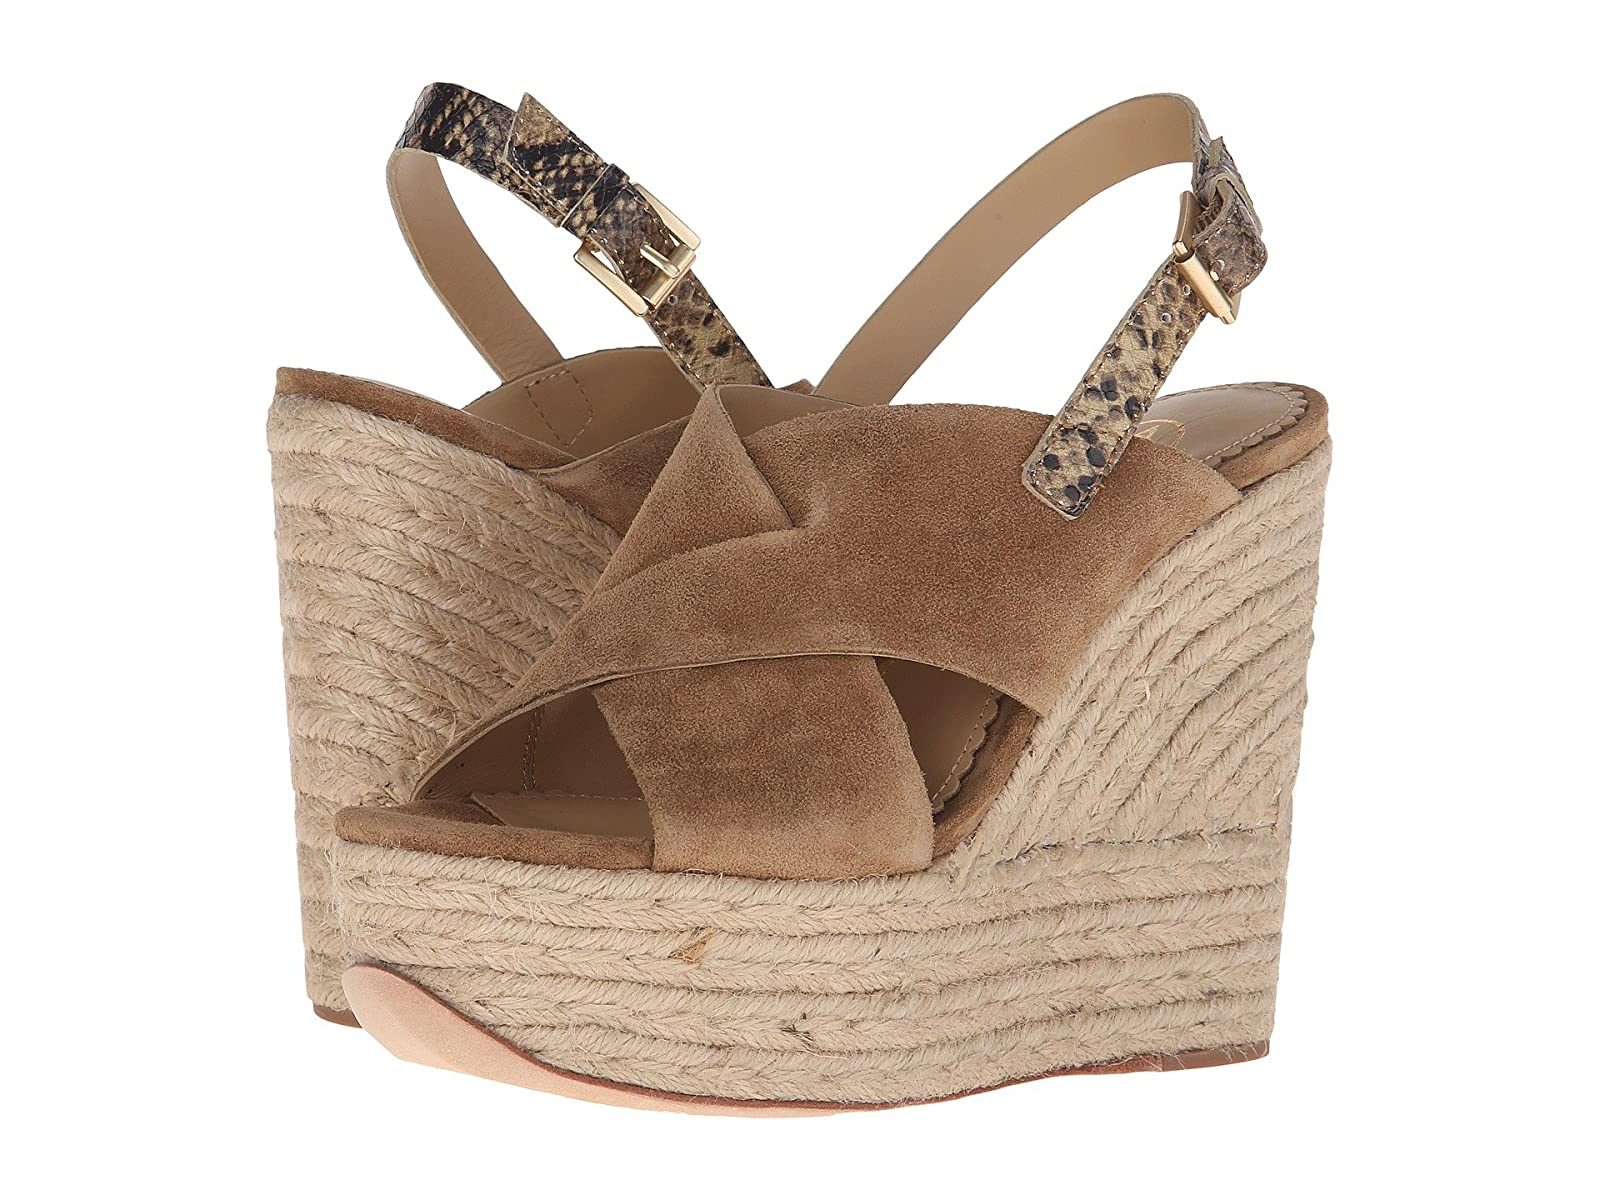 ASH BorneoCheap and distinctive eye-catching shoes